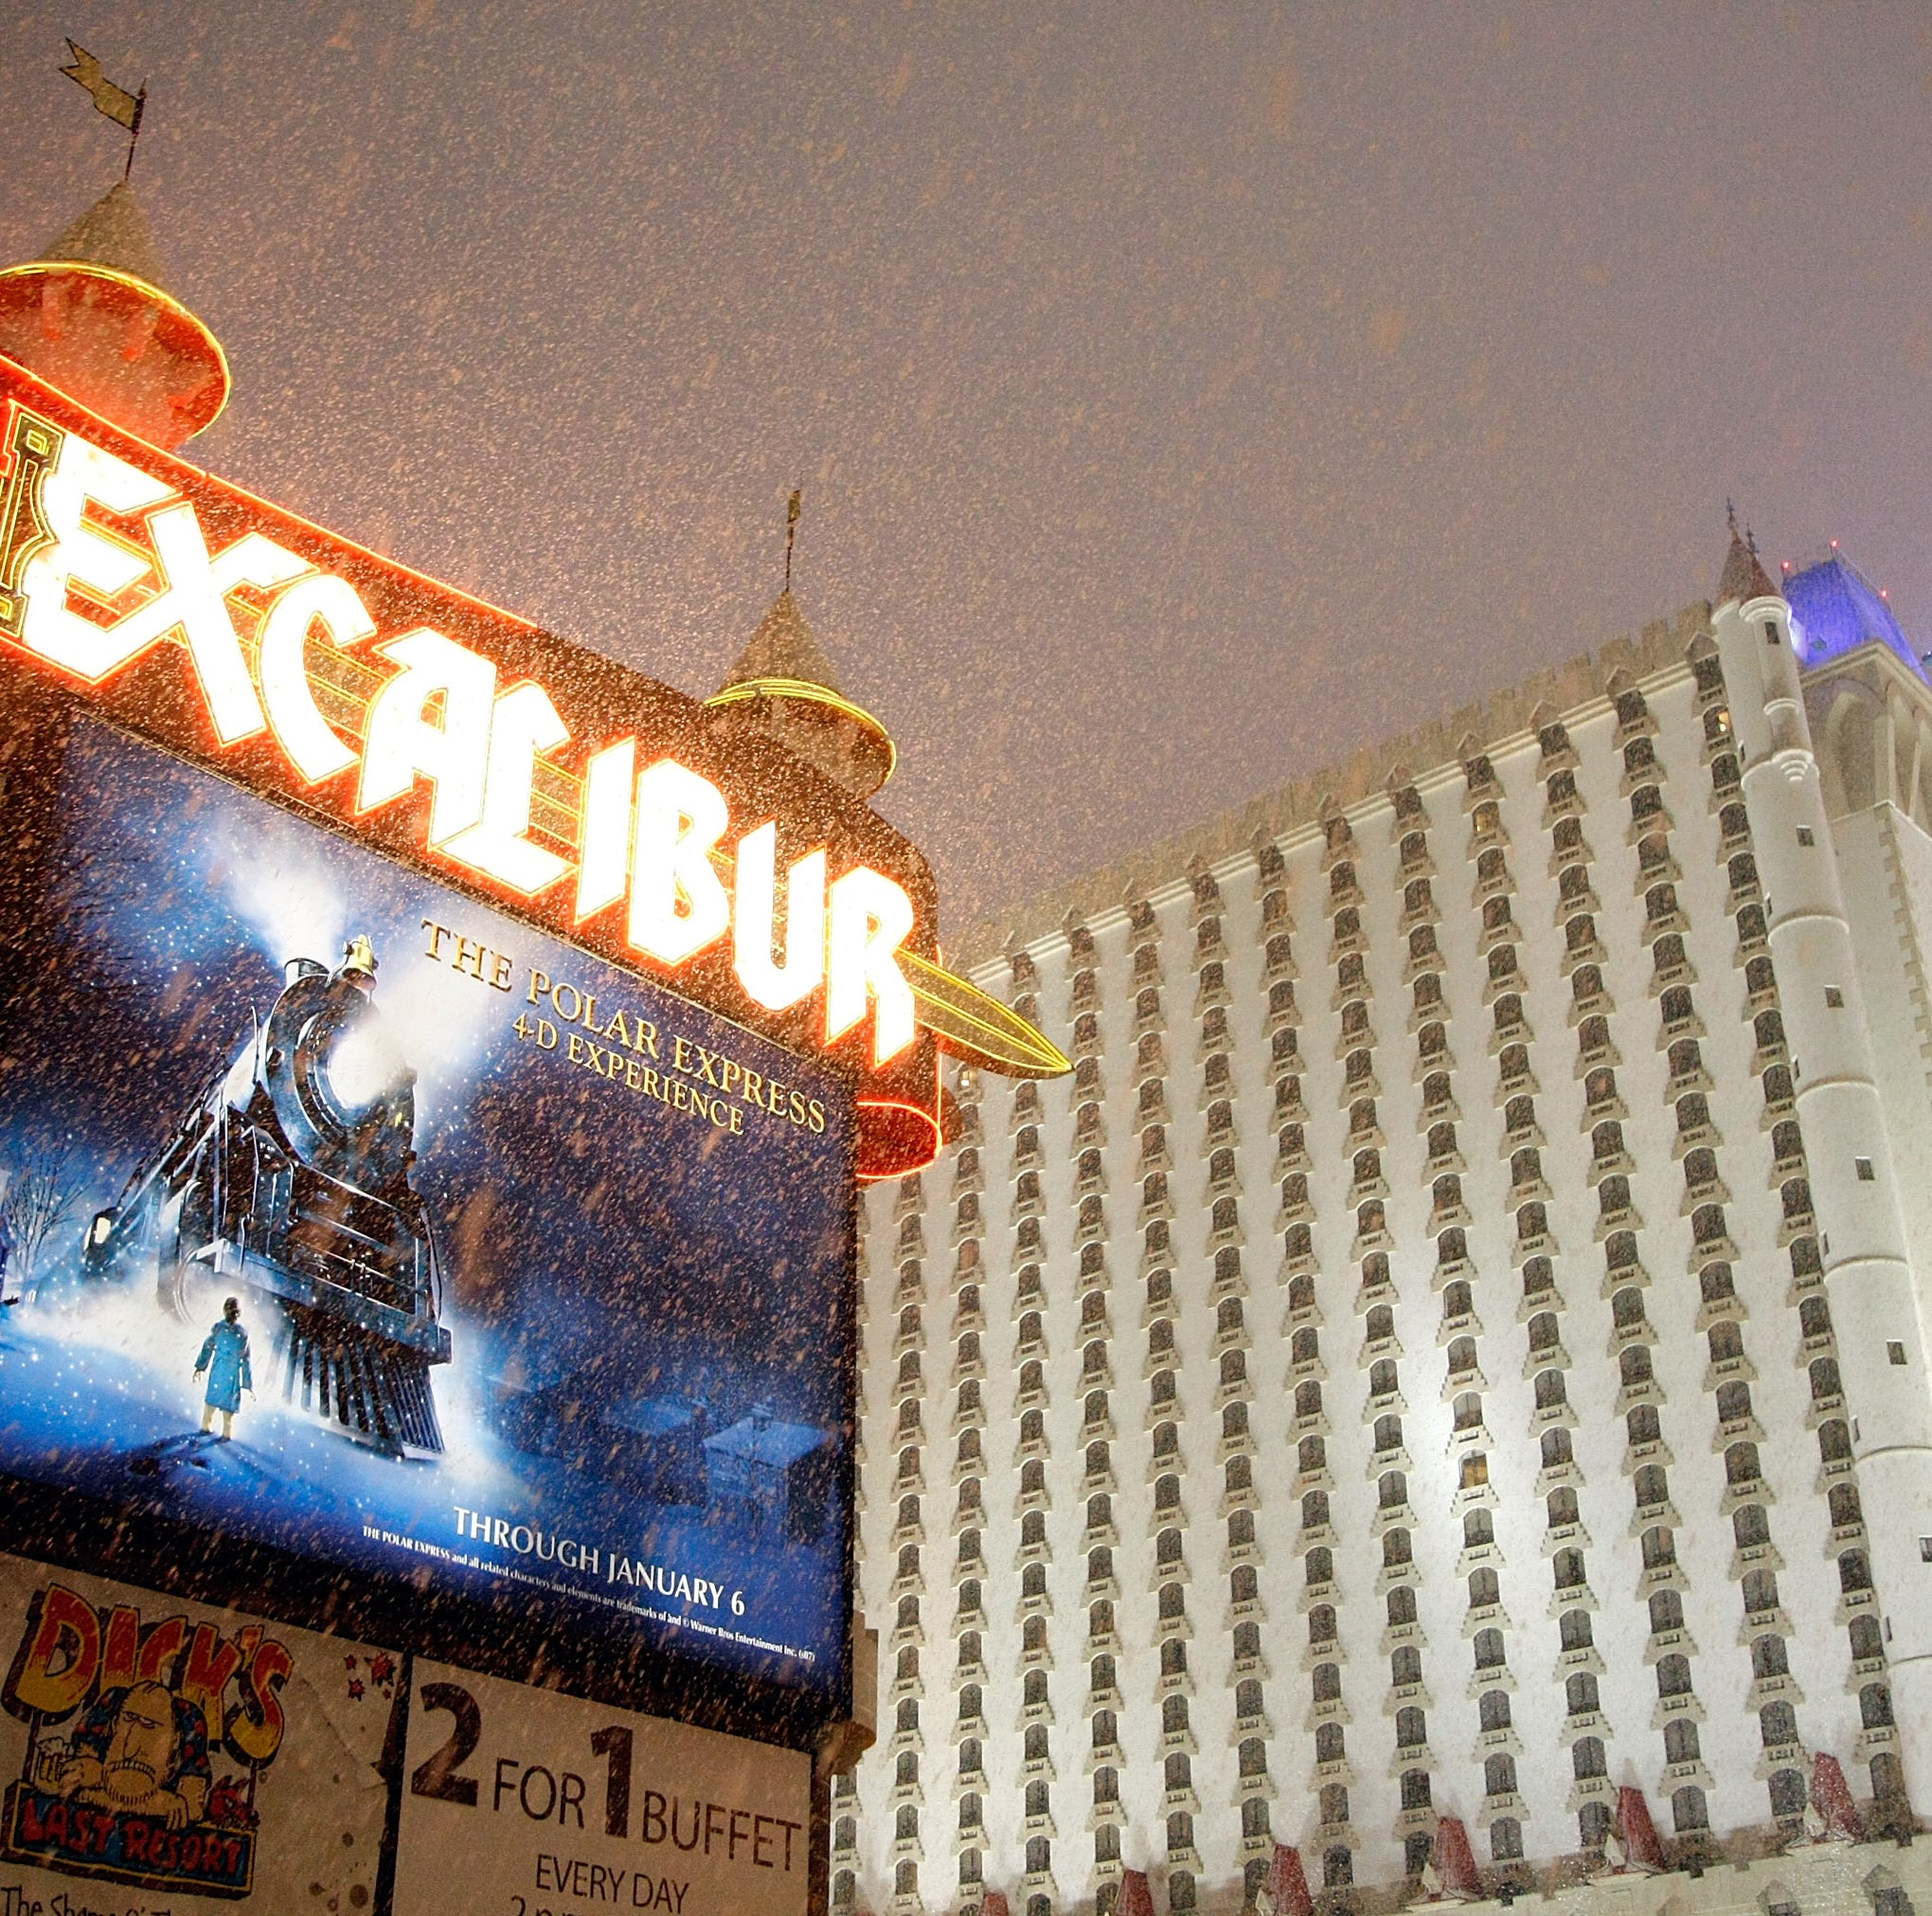 Winter weather isn't just battering the eastern US. It's even snowing in Las Vegas